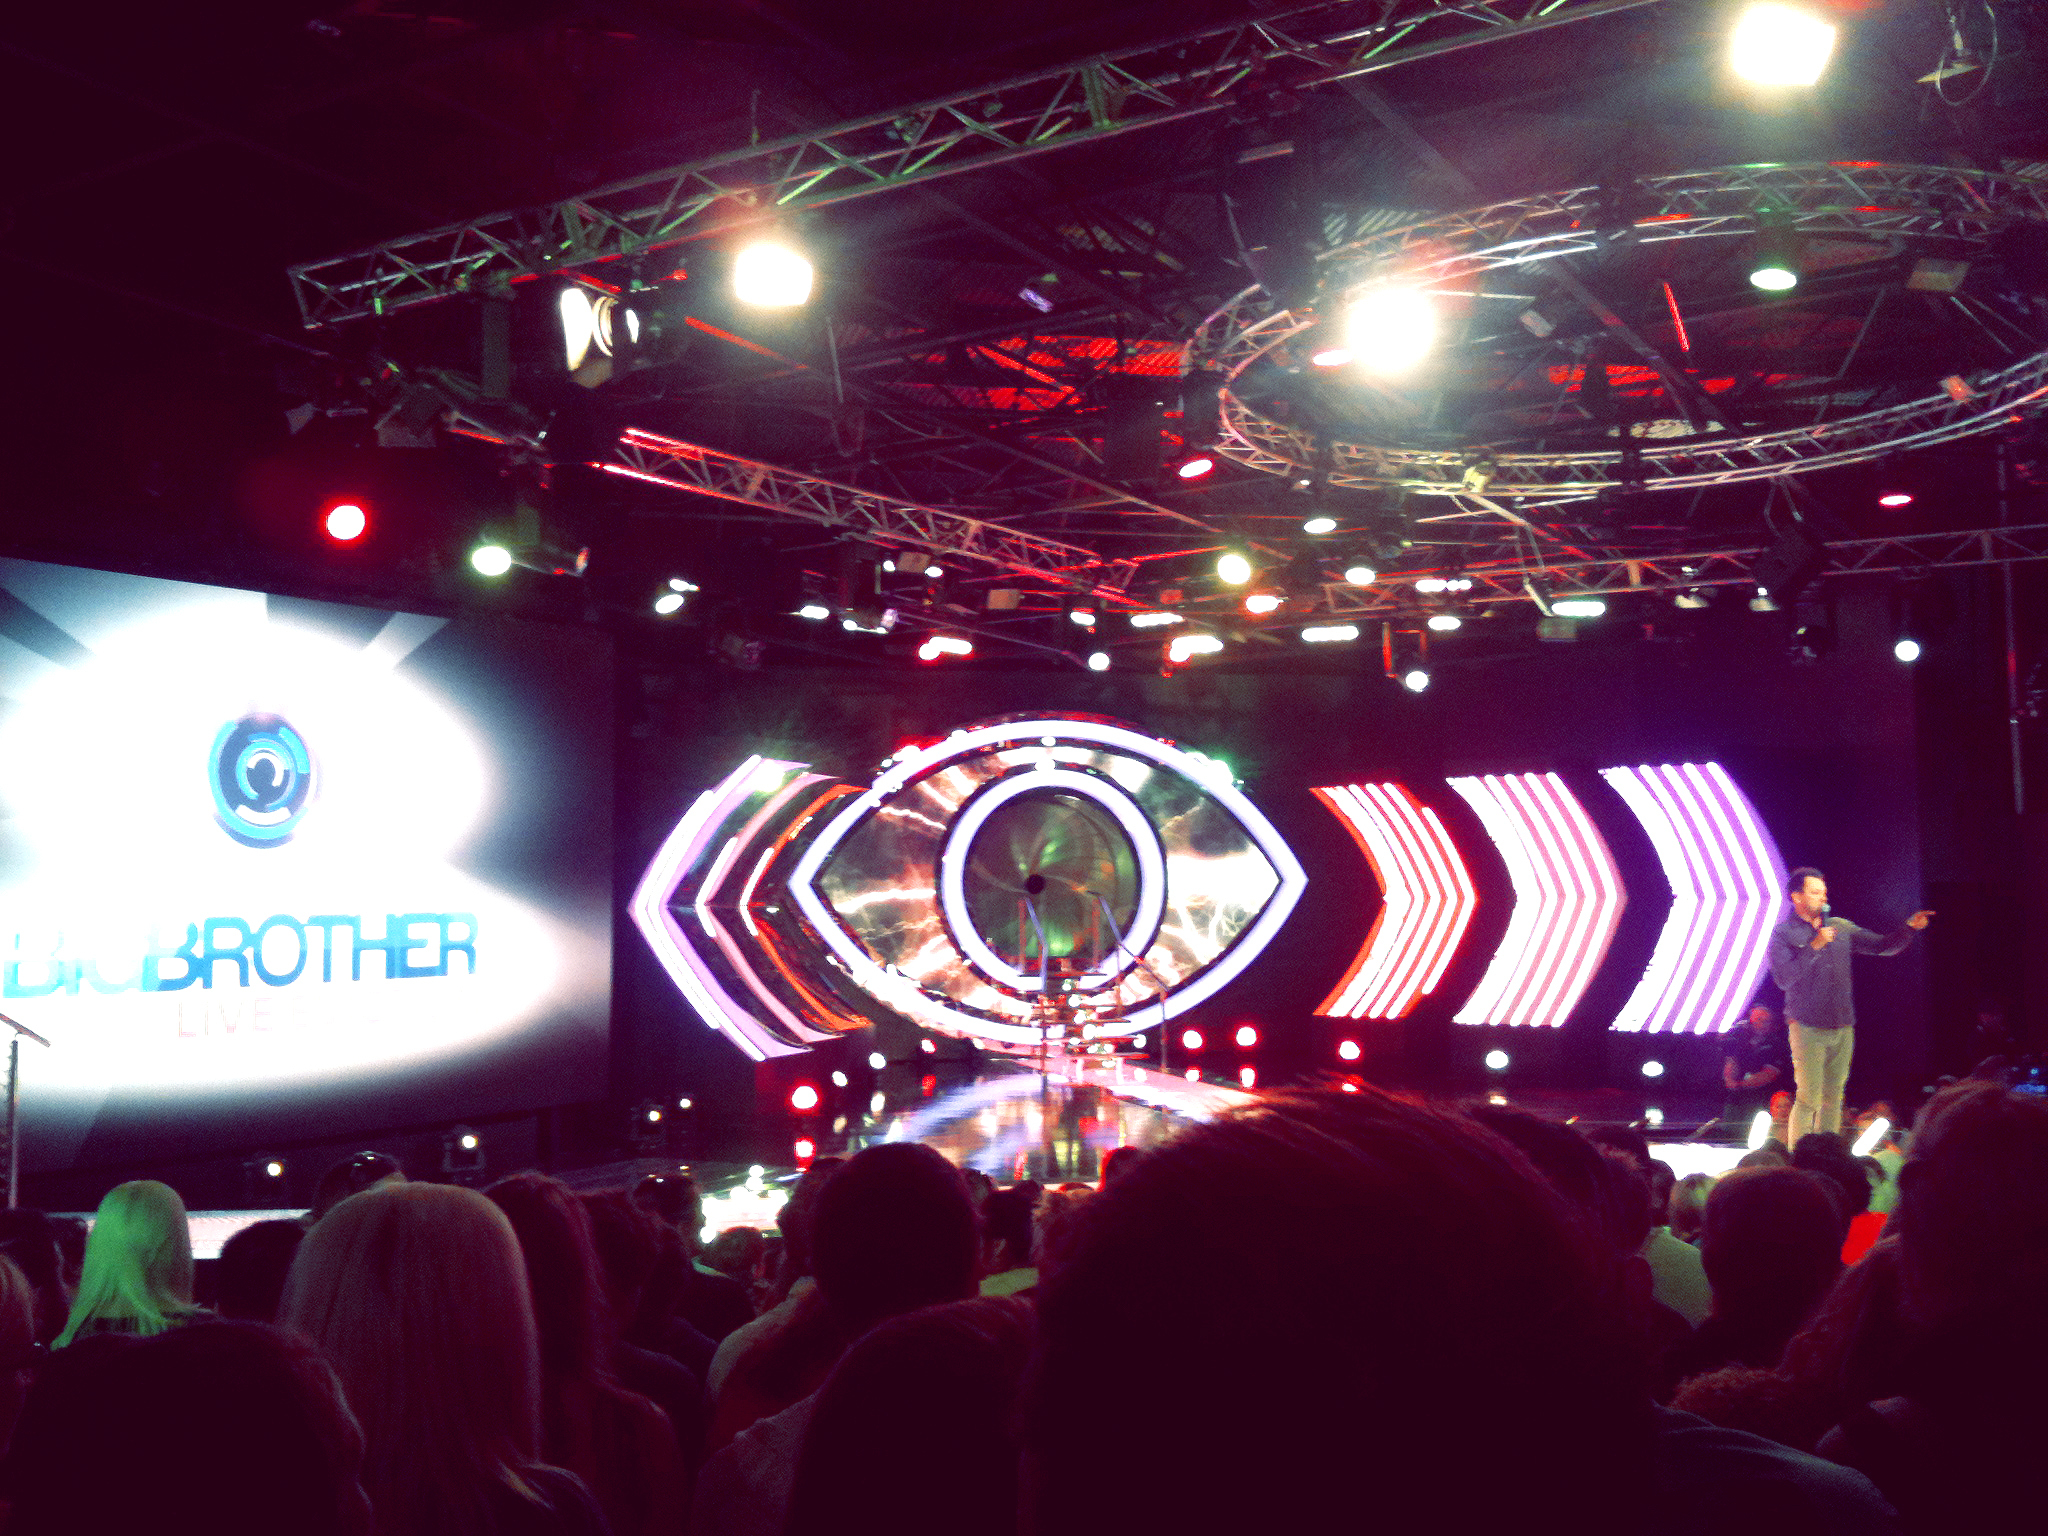 Big Brother 15 Slip Big brother stage